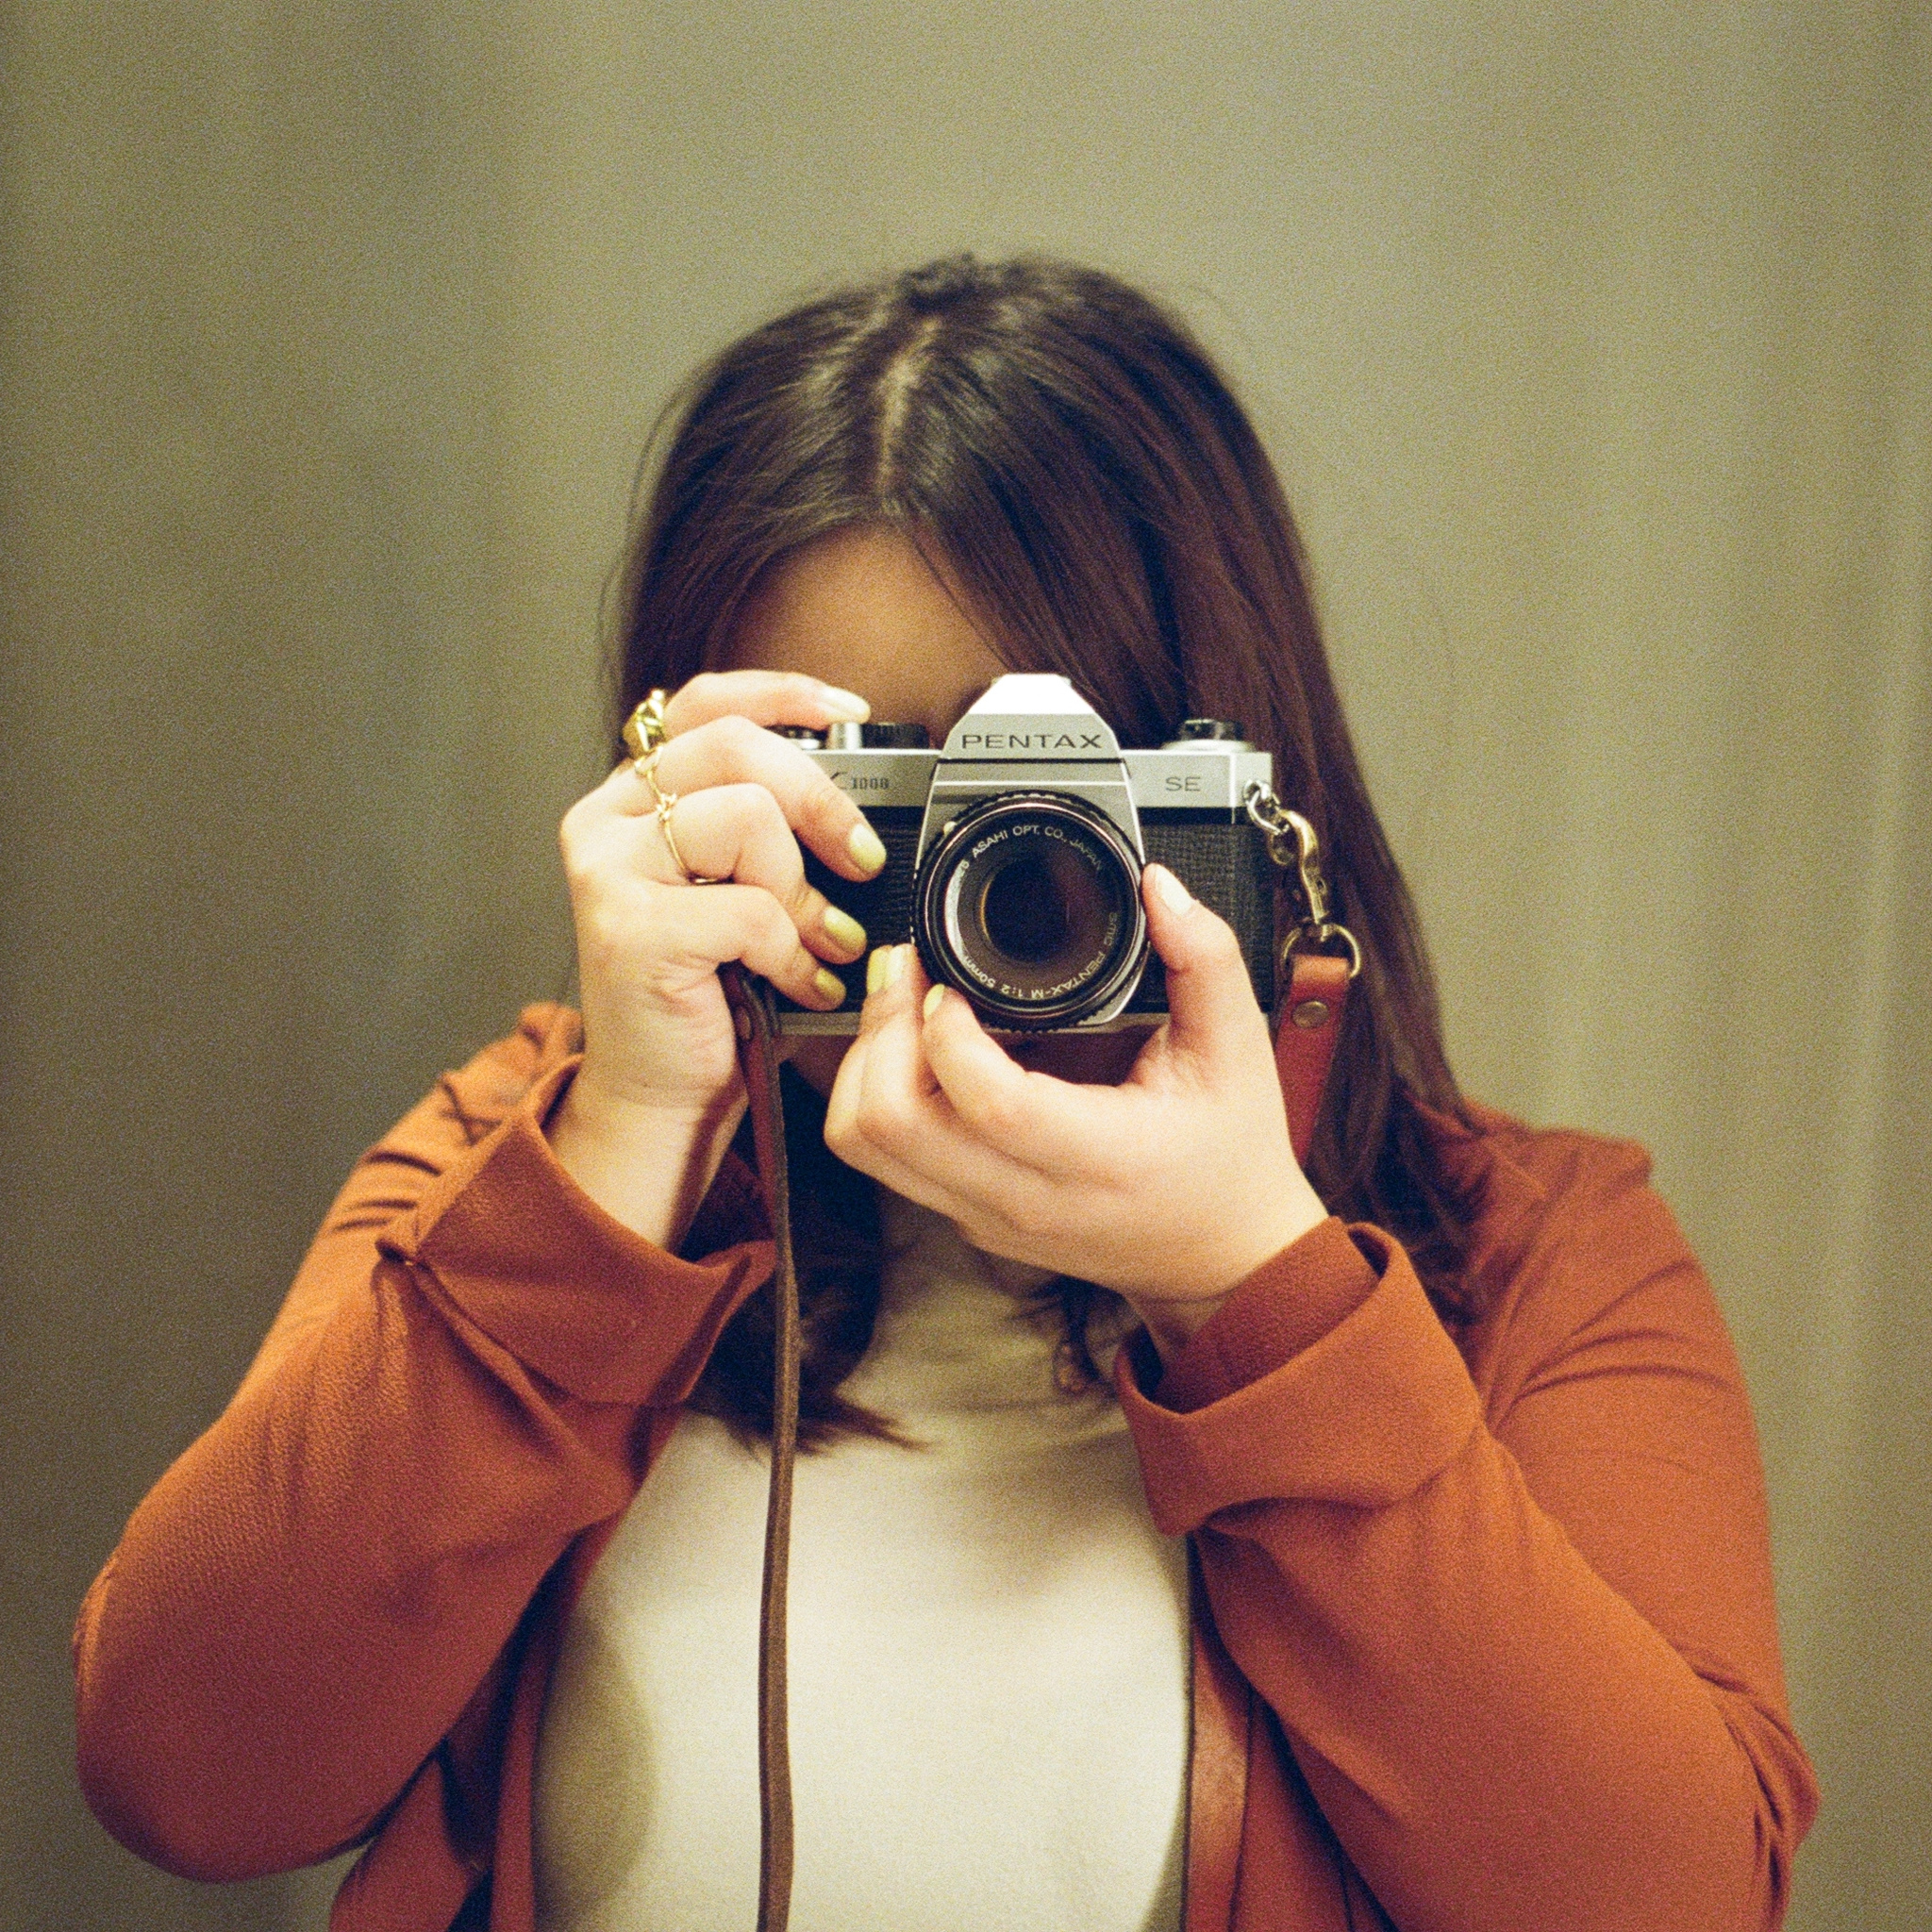 Portrait of Chalista taking a picture with her camera, wearing a red jacket and while blouse